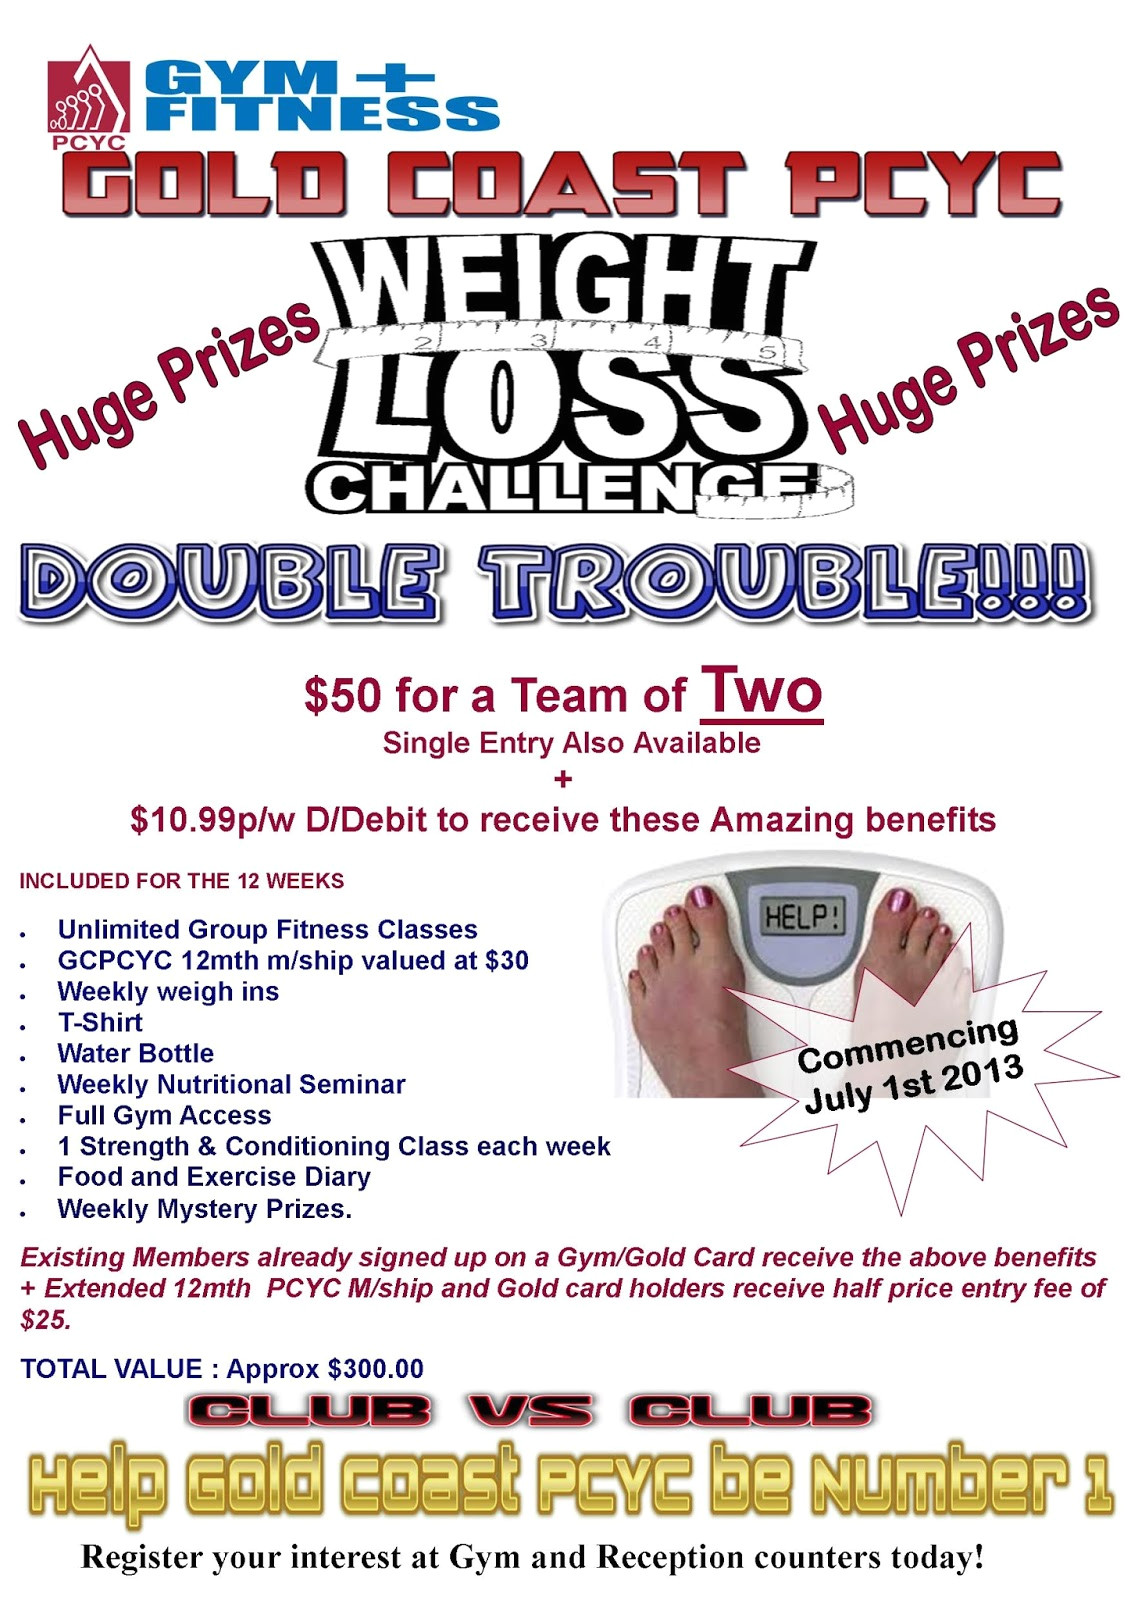 gold coast pcyc weight loss challenge